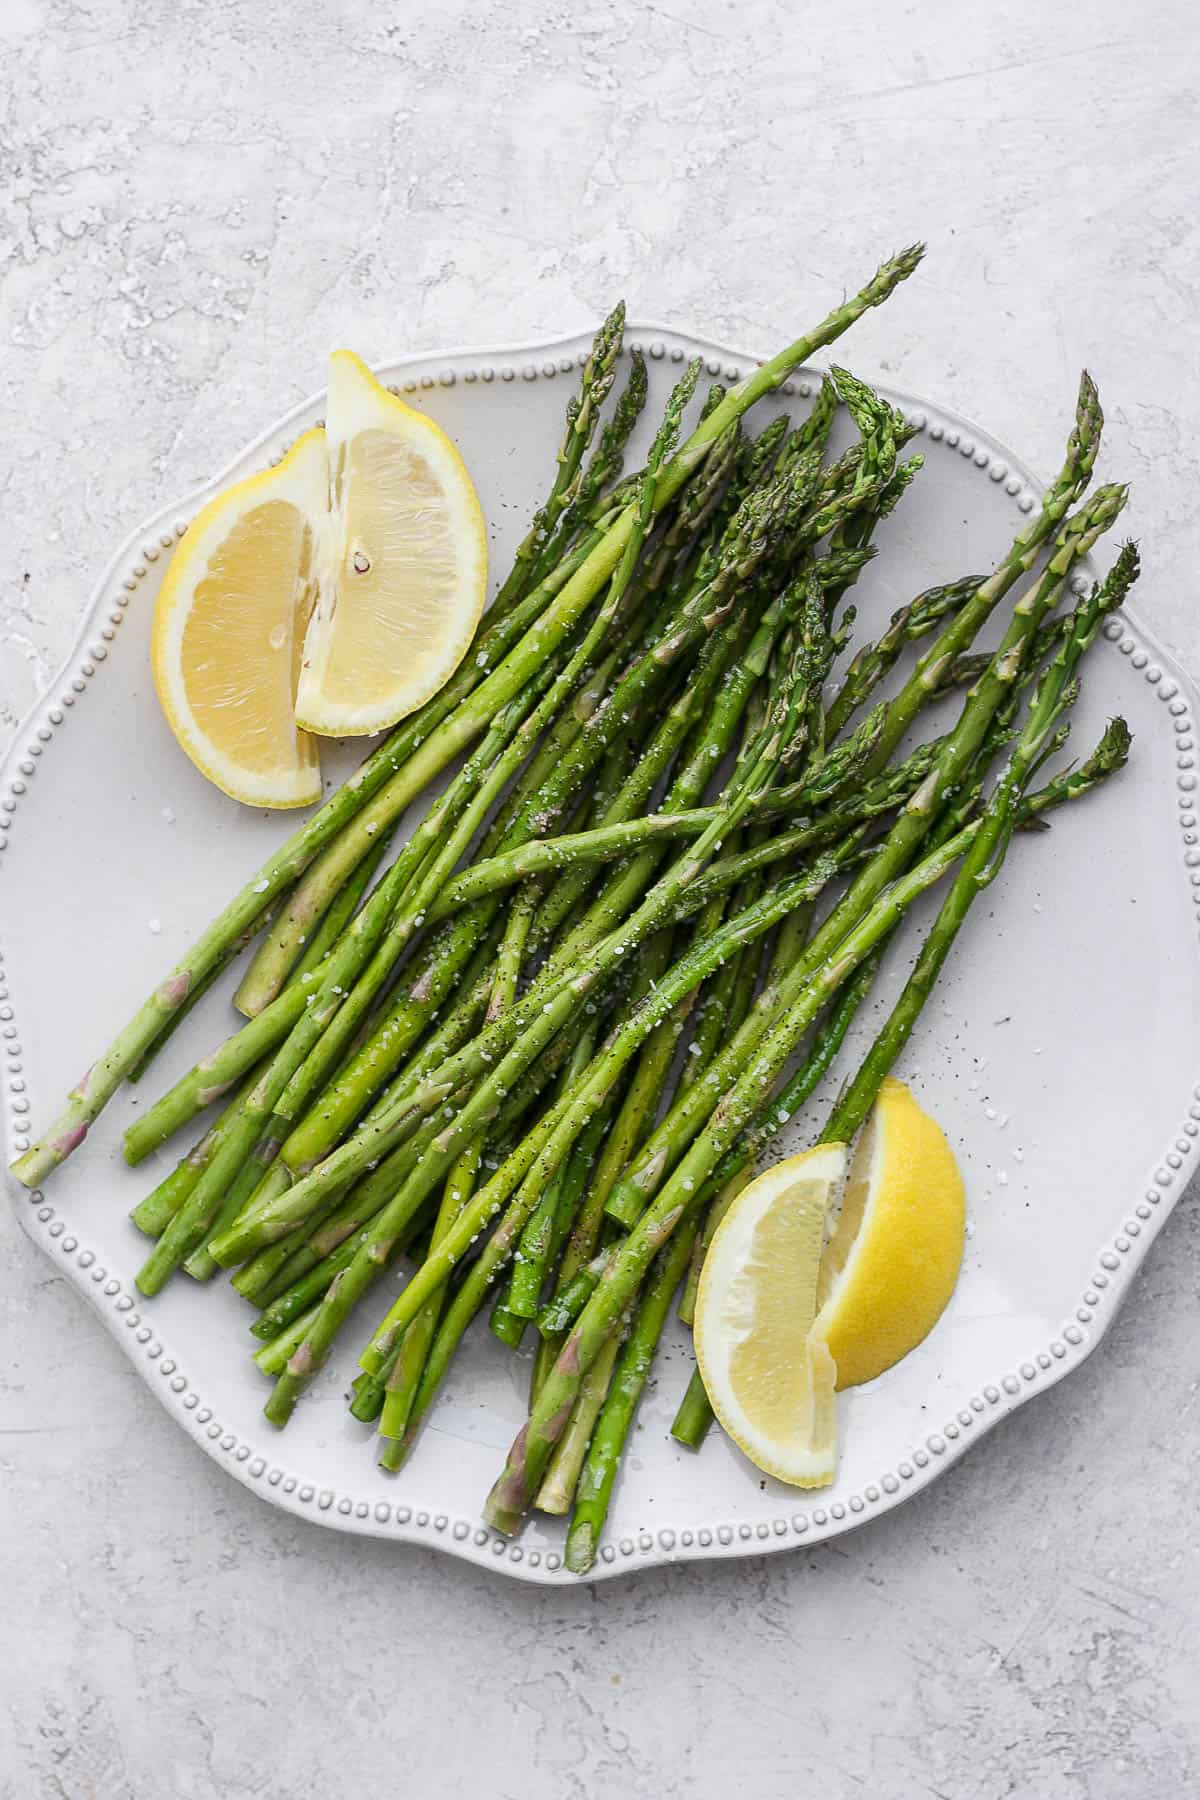 Oven roasted asparagus on a plate with lemon wedges